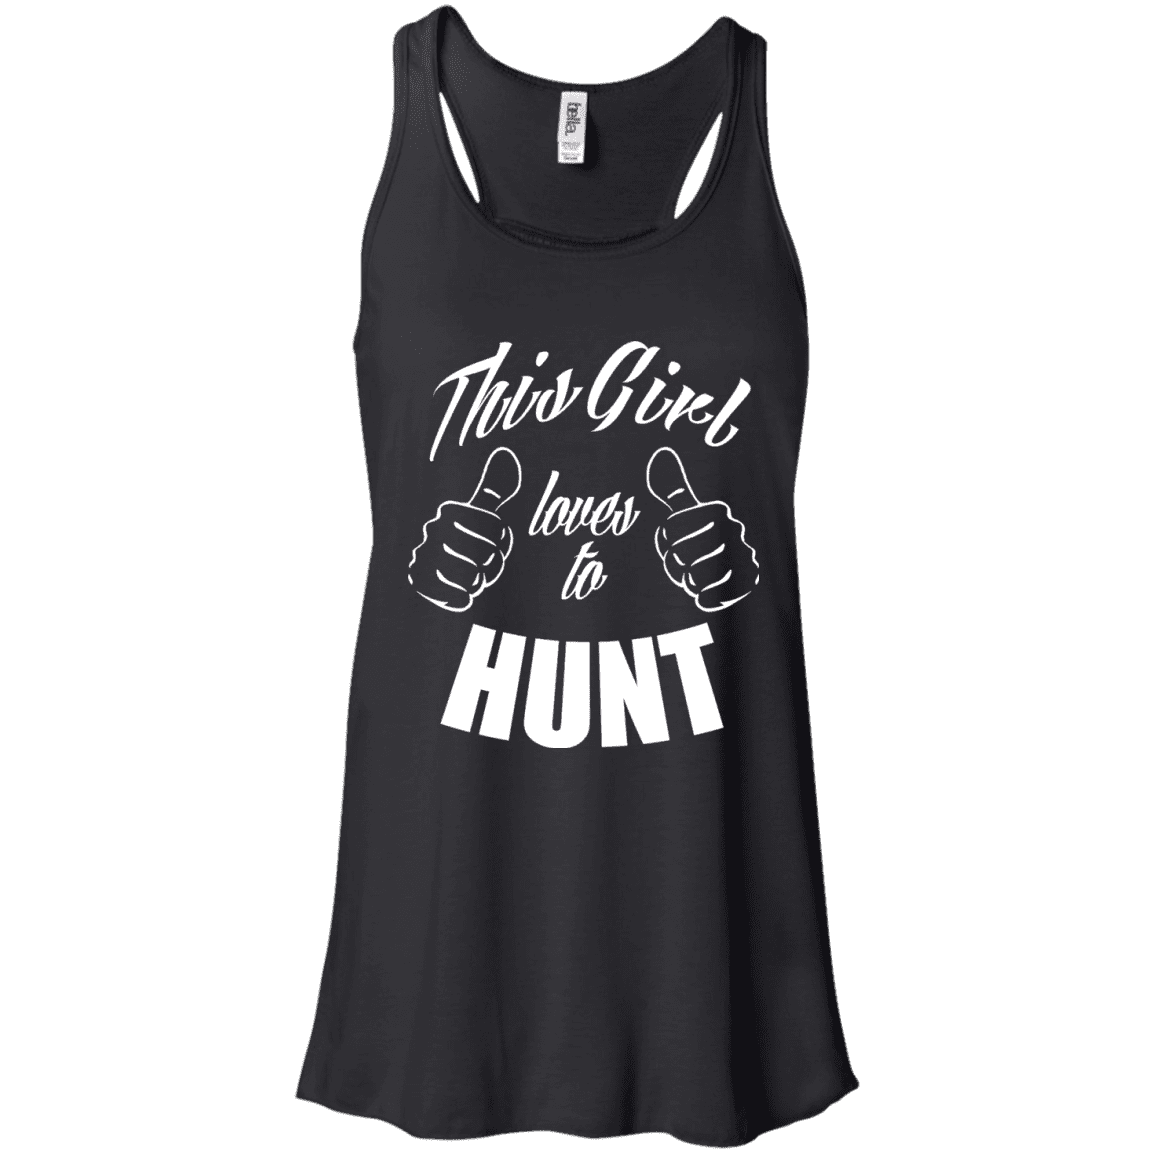 This Girl Loves To Hunt Ladies Tee - STUDIO 11 COUTURE